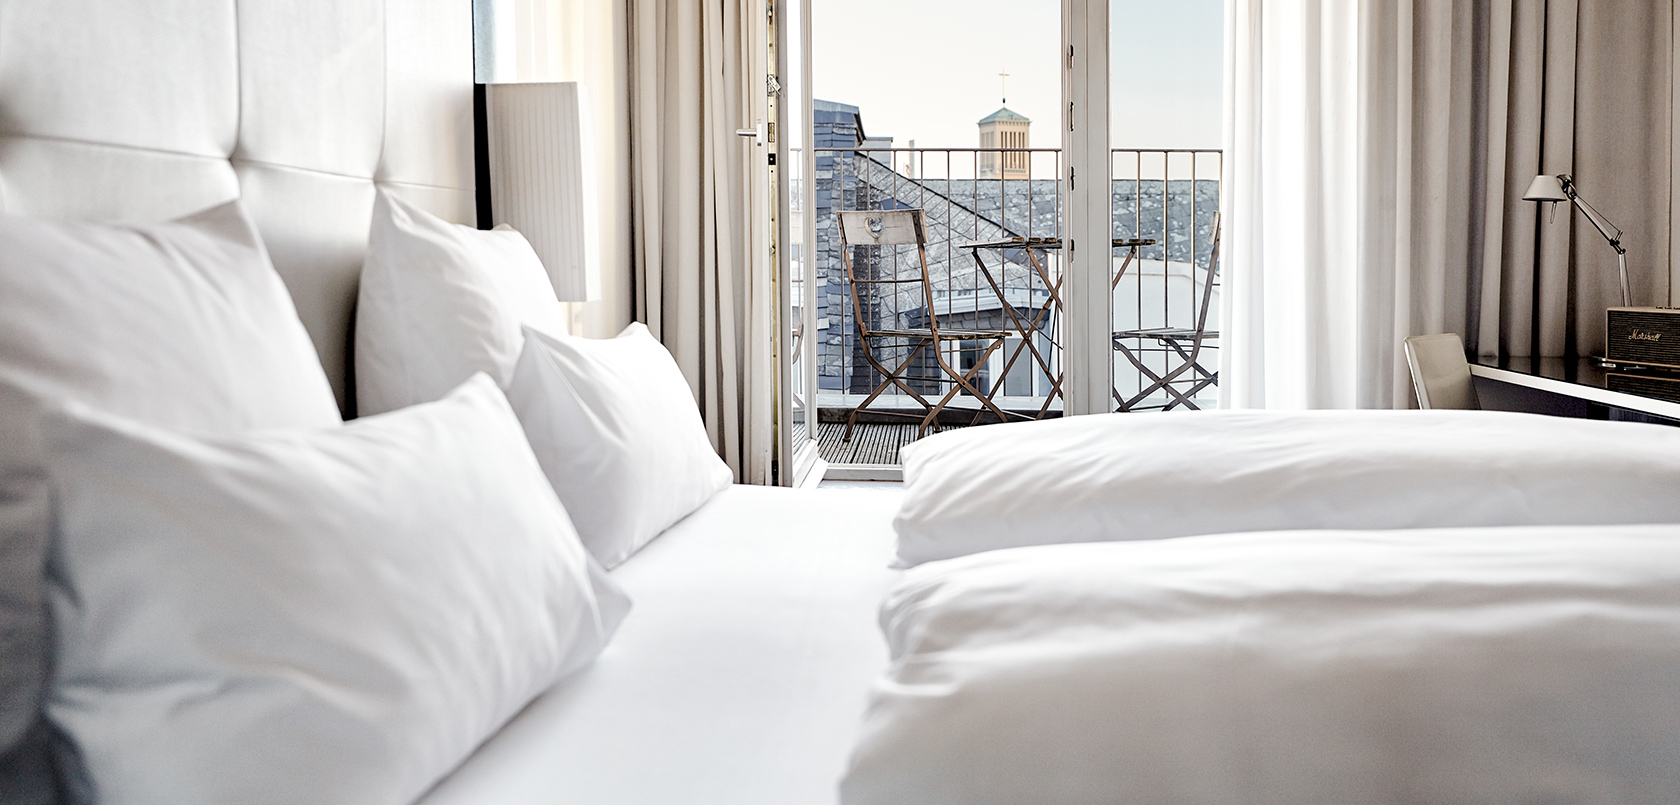 The Pure Frankfurt Rooms